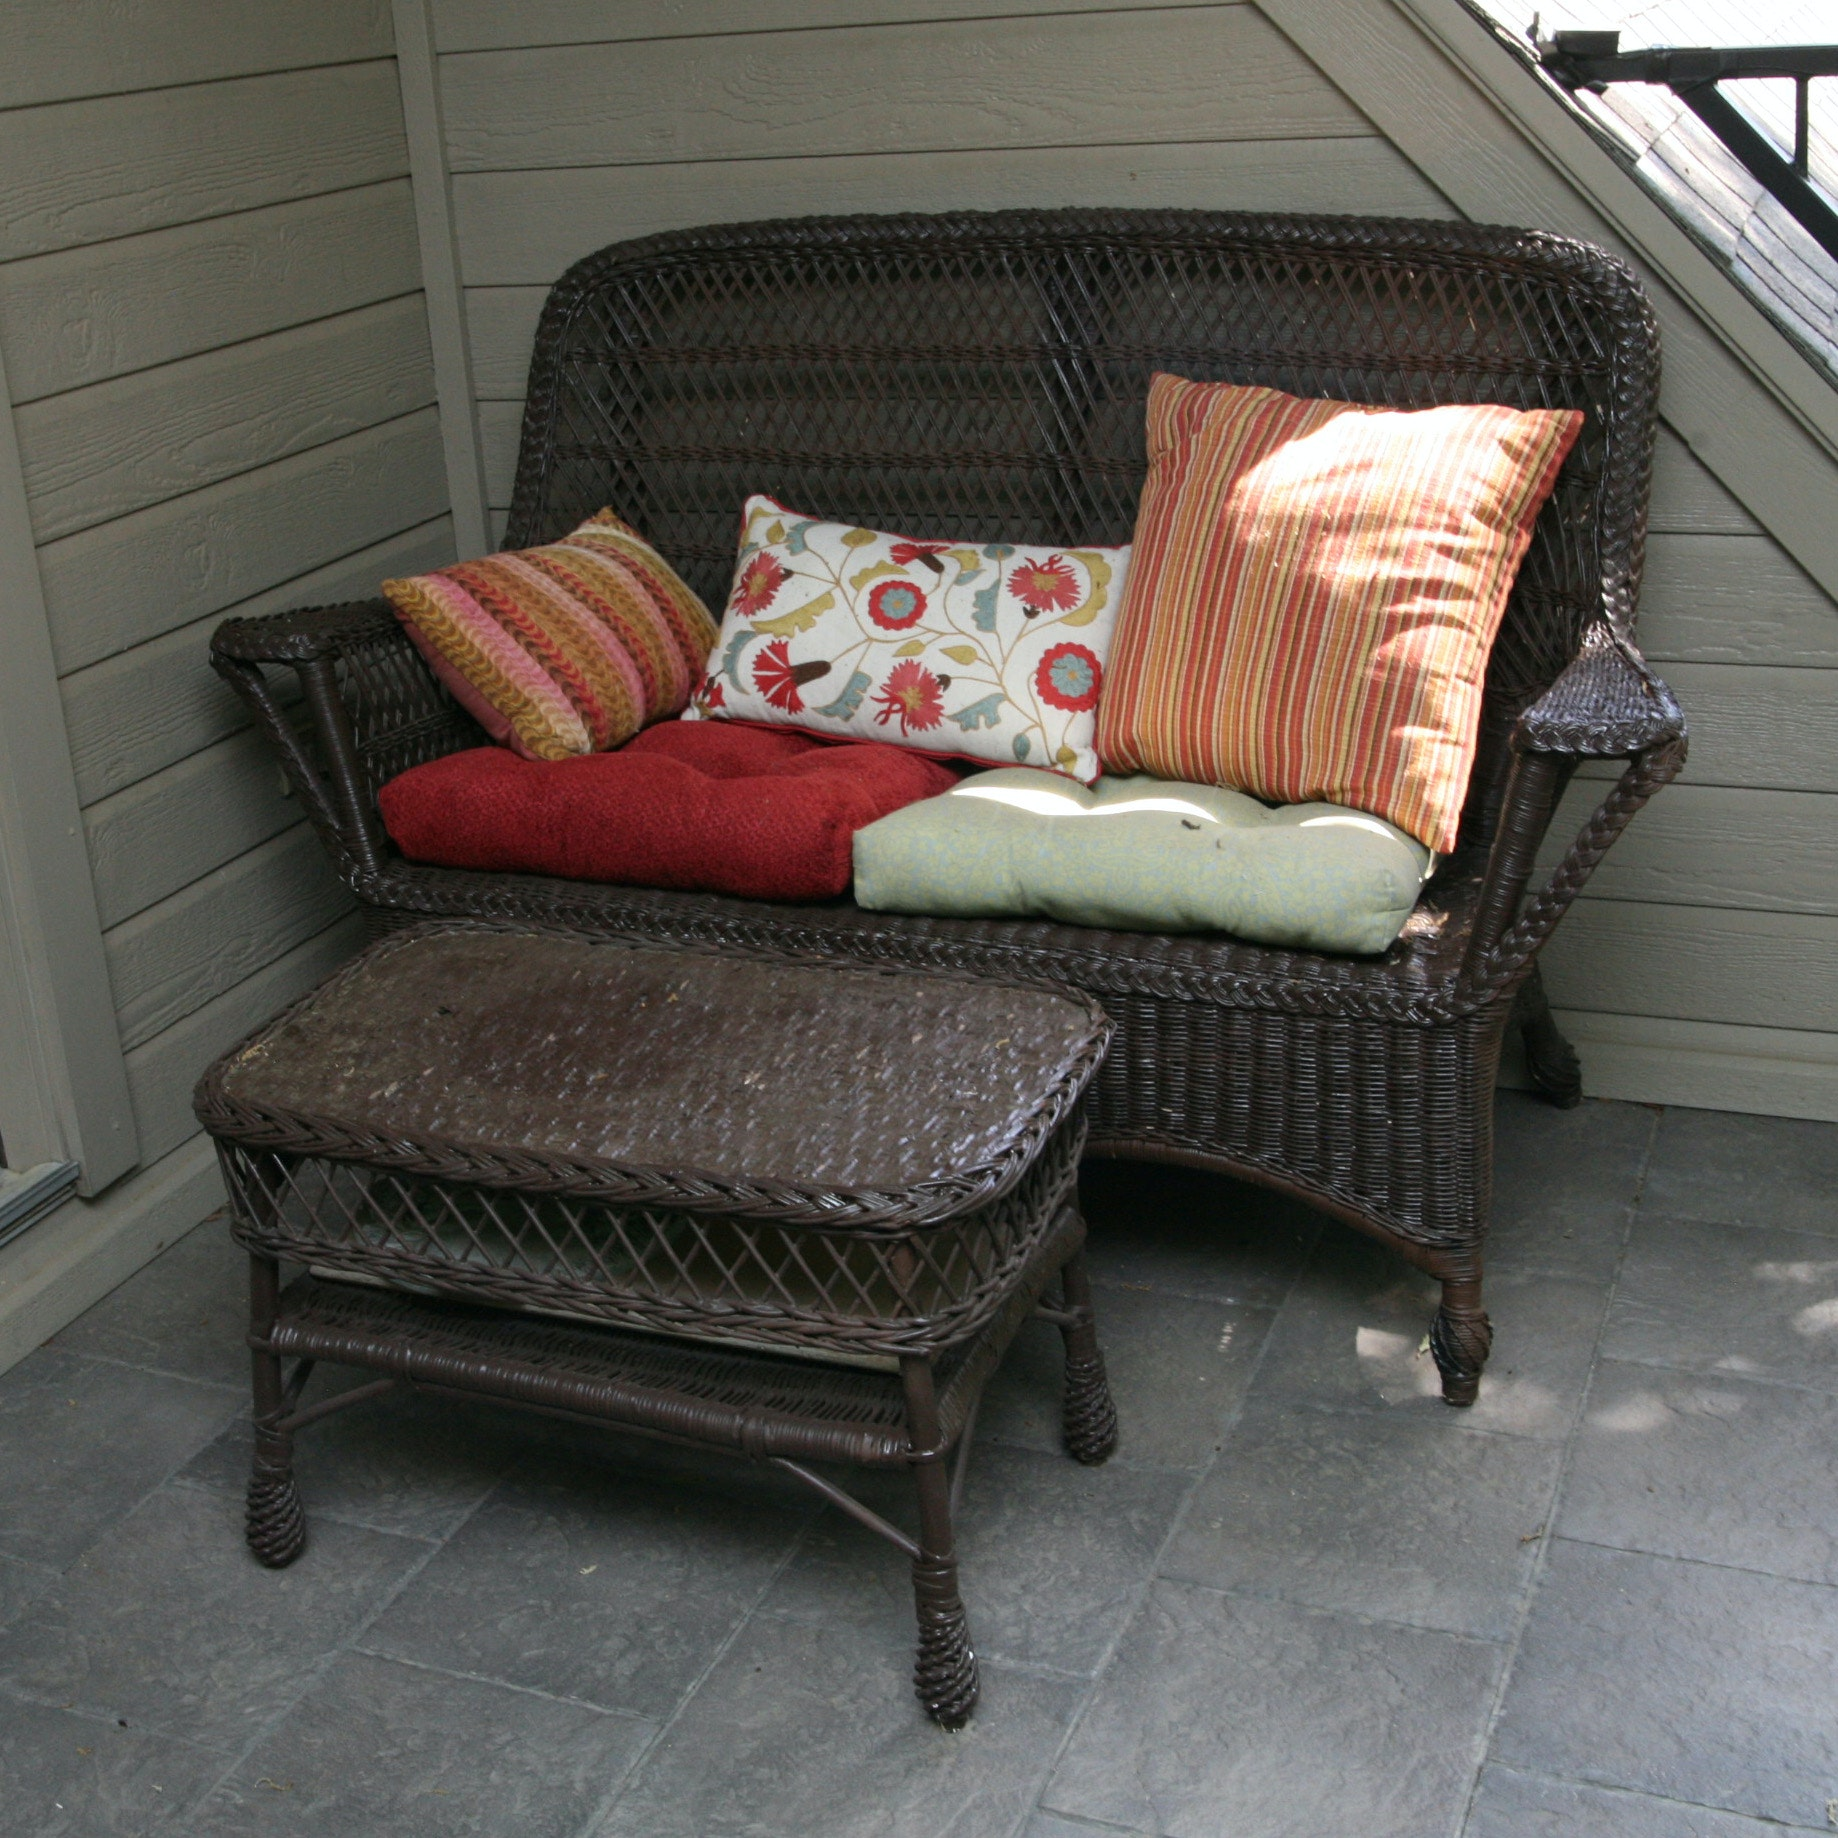 Wicker Patio Loveseat with Ottoman and Cushions